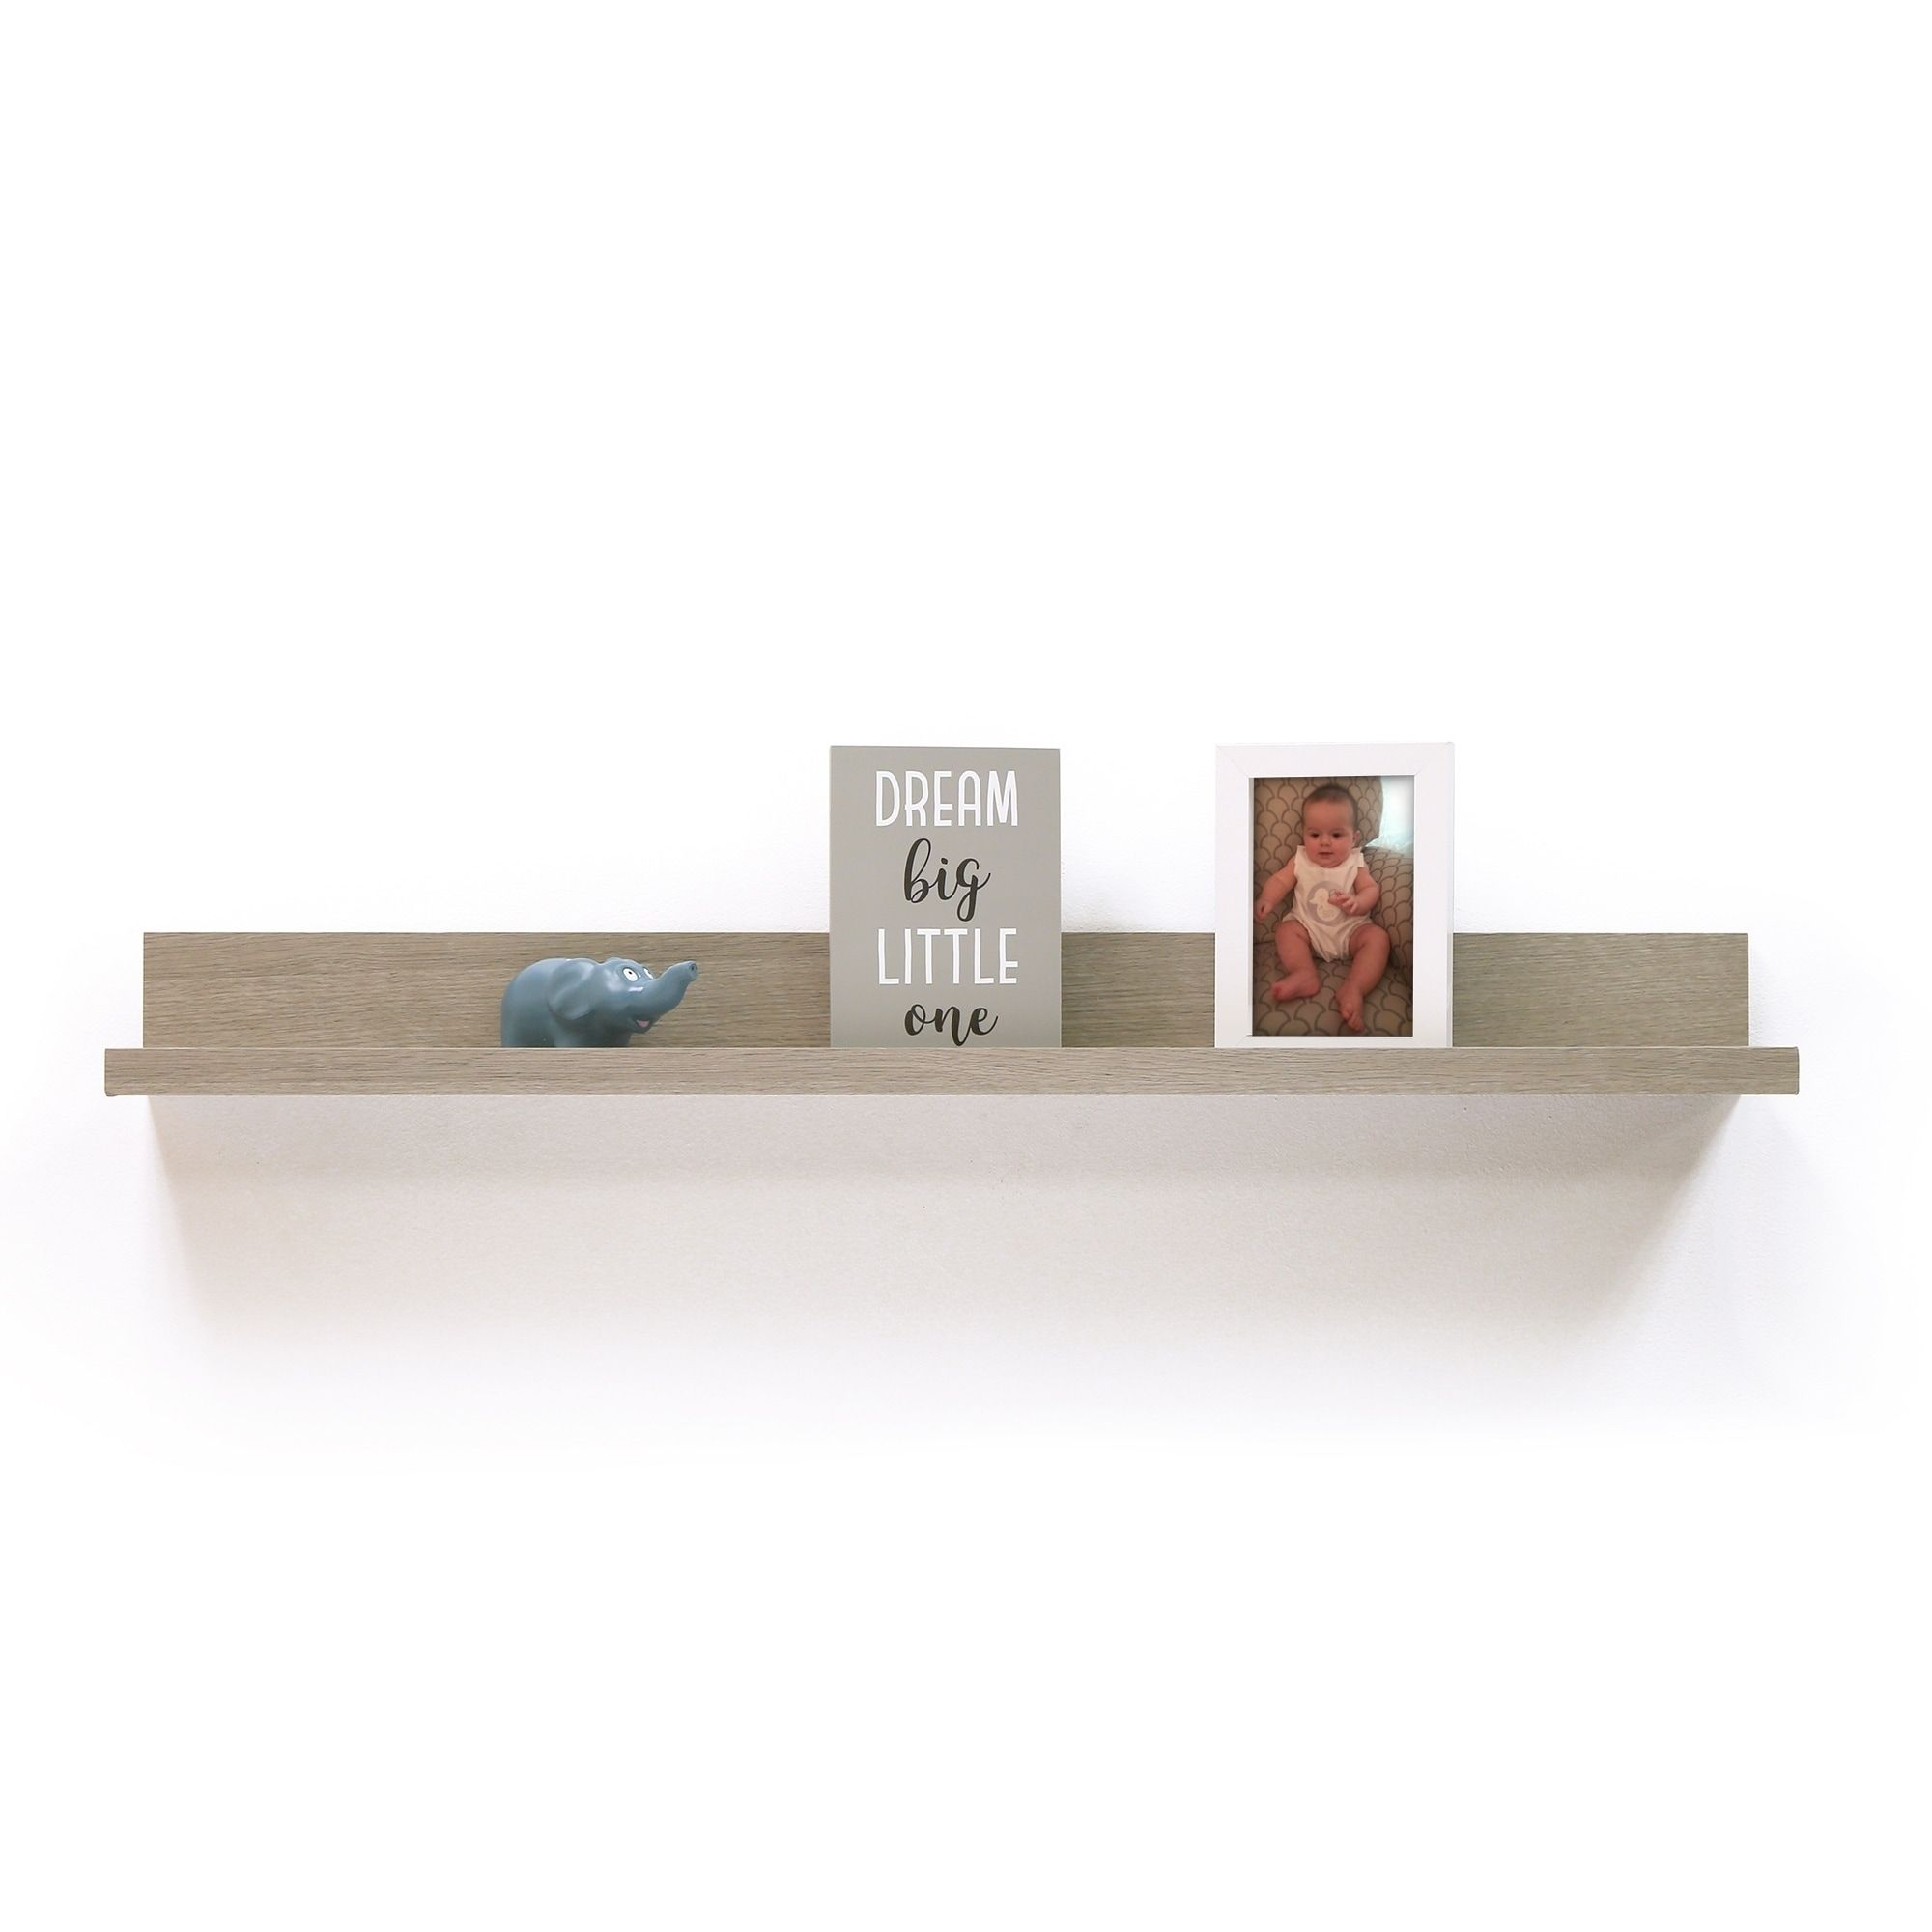 Inplace 36 Inch Grey Driftwood Picture Ledge Gray Hyman Inc Wall Shelves Driftwood Shelf Picture Ledge Shelf